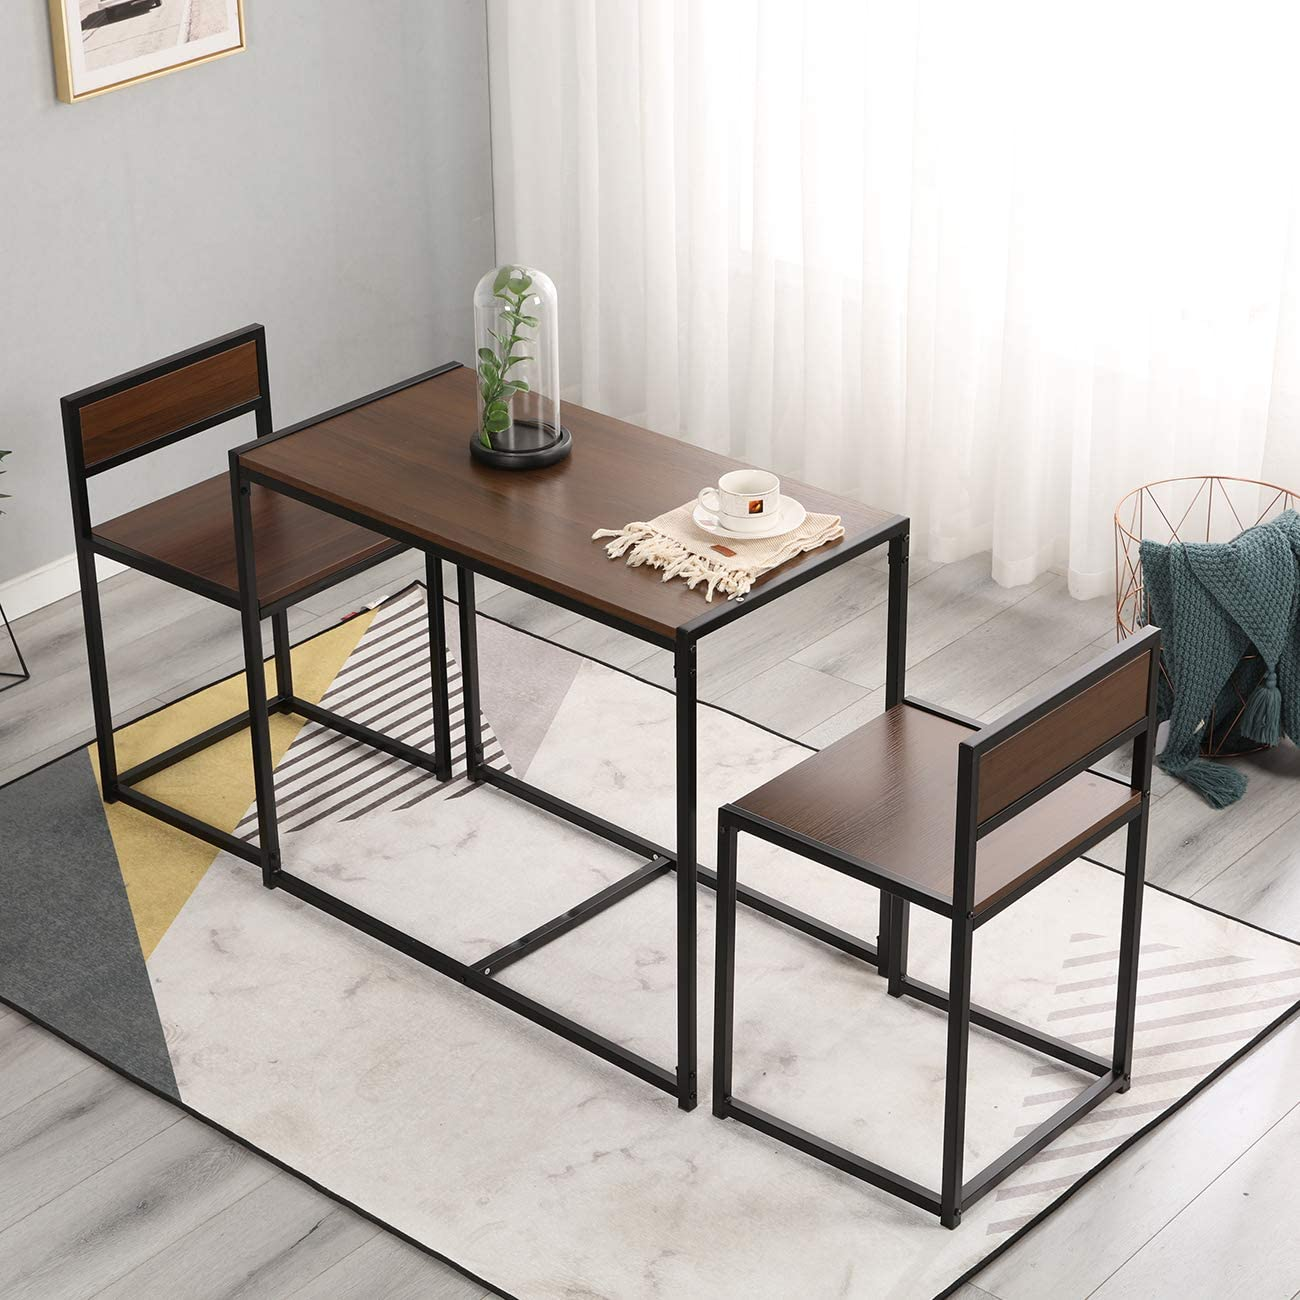 SogesHome Dining Table Set Dining Table & 9 Chairs Compact Kitchen ...